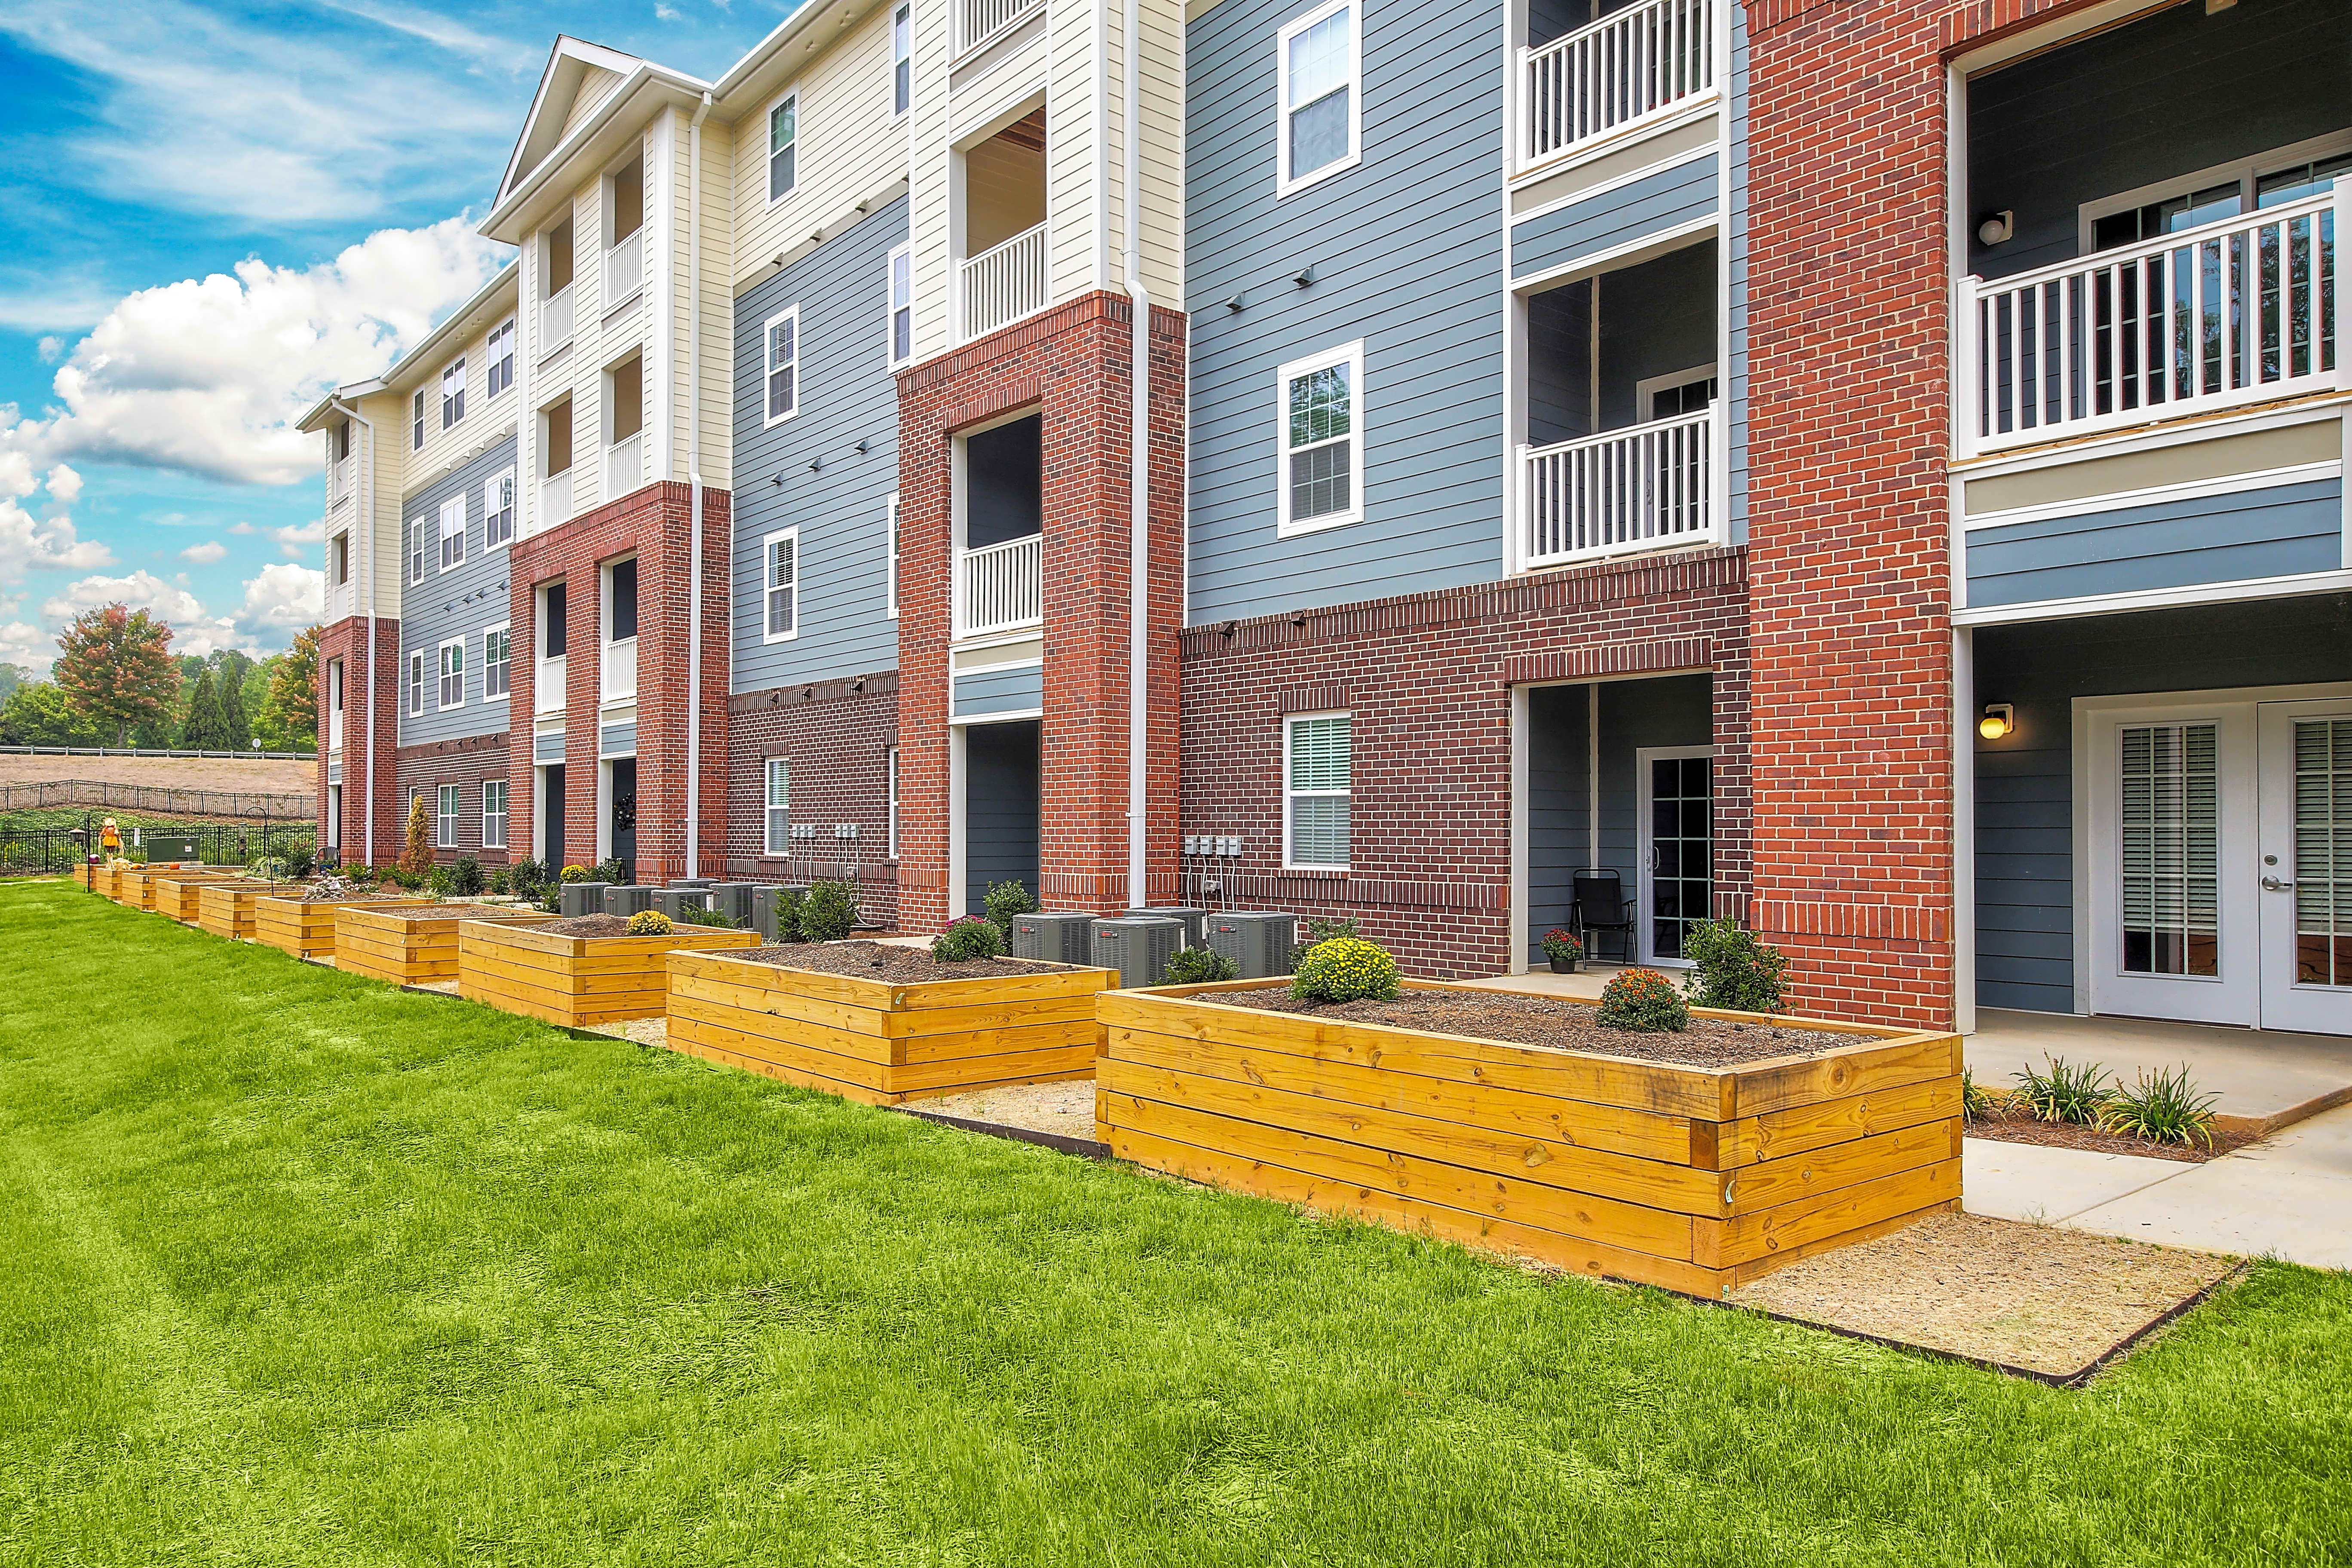 Apartments Near Belmont Abbey Loftin at Montcross Senior Apartments for Belmont Abbey College Students in Belmont, NC